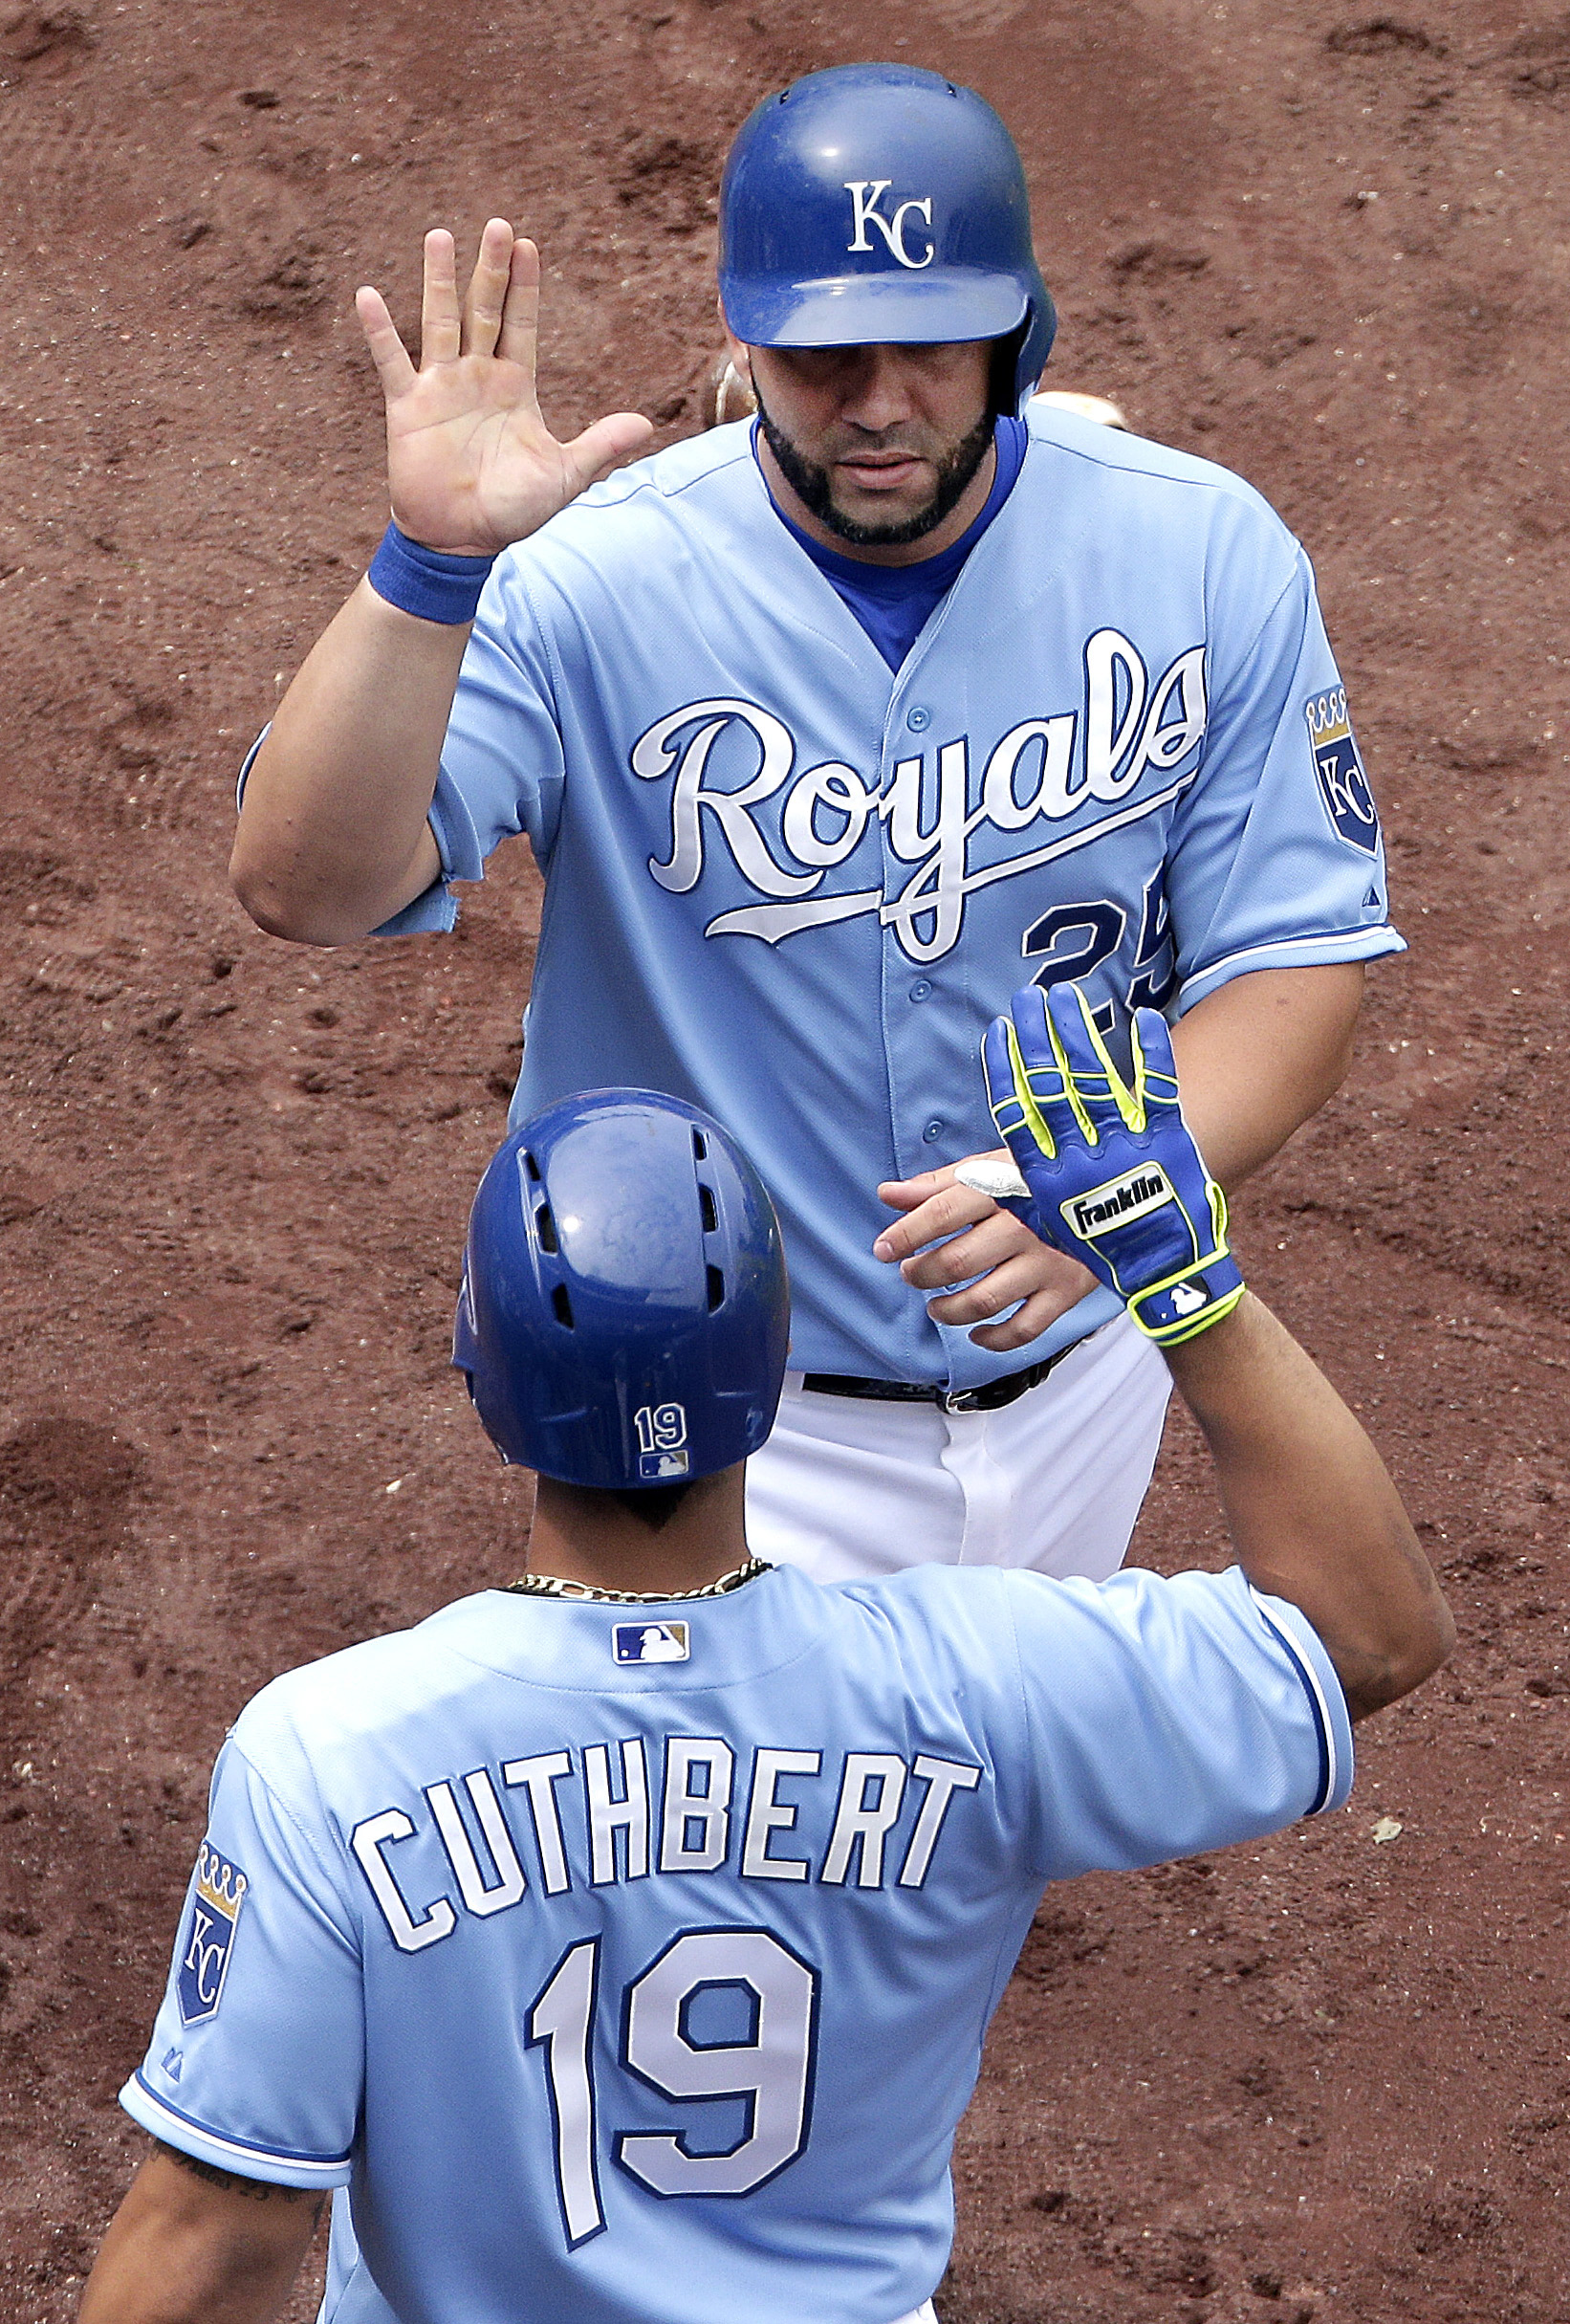 Kansas City Royals' Kendrys Morales (25) and Cheslor Cuthbert (19) celebrate after Morales scored on a single by Omar Infante during the seventh inning of the first game in a baseball doubleheader against the Tampa Bay Rays Tuesday, July 7, 2015, in Kansa